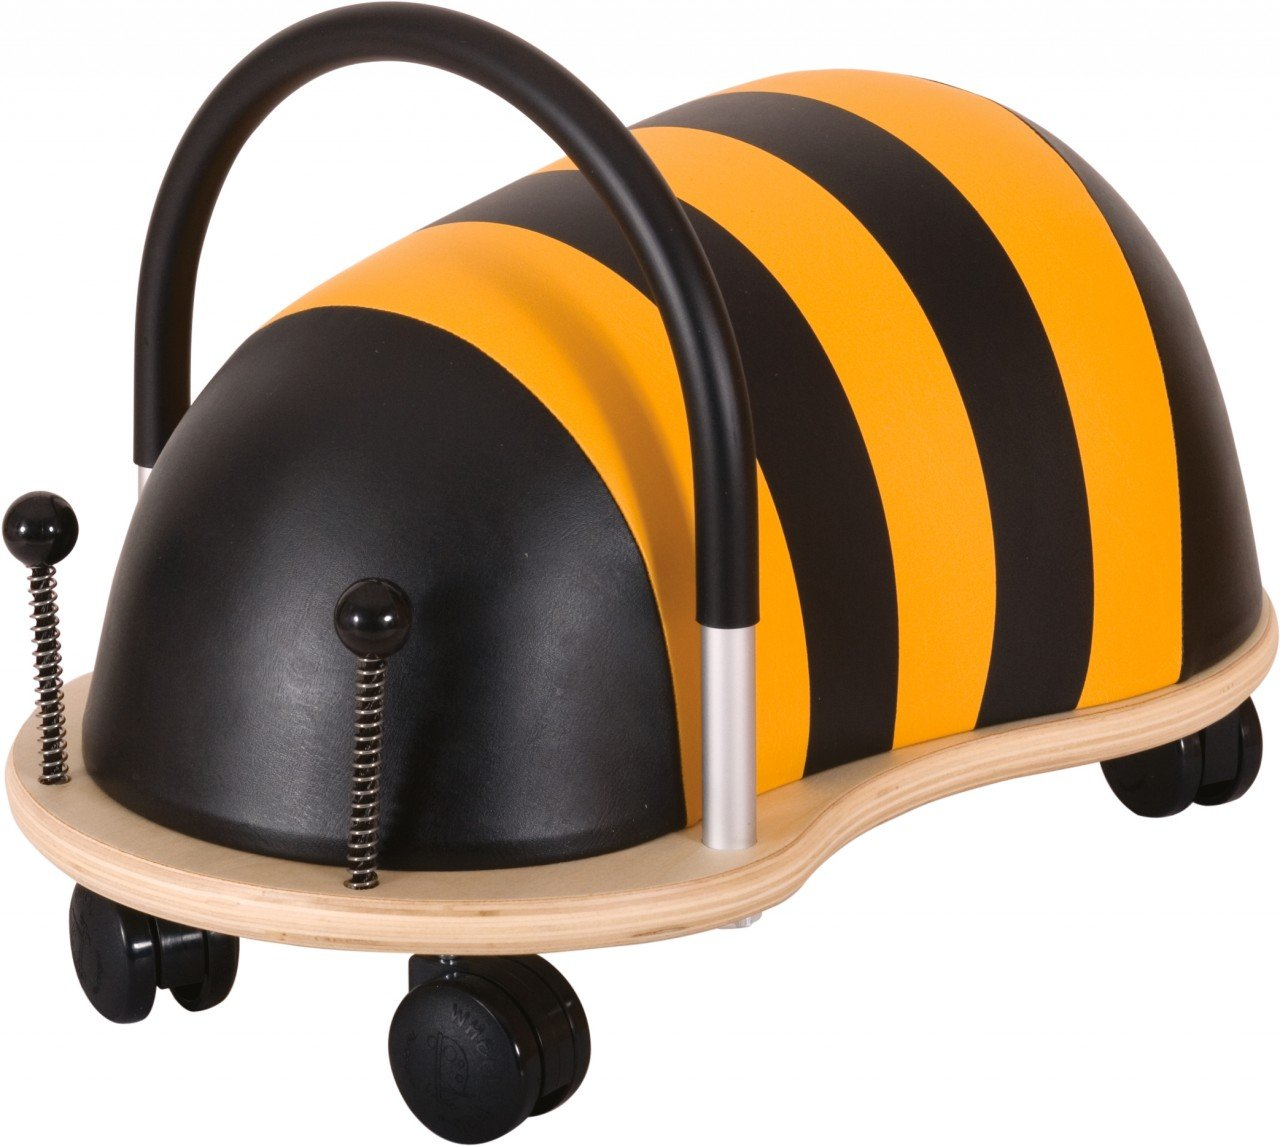 Hippychick - WBBEEL - Wheelybug Bee Ride-on - Trottinette - Large 5050053149459